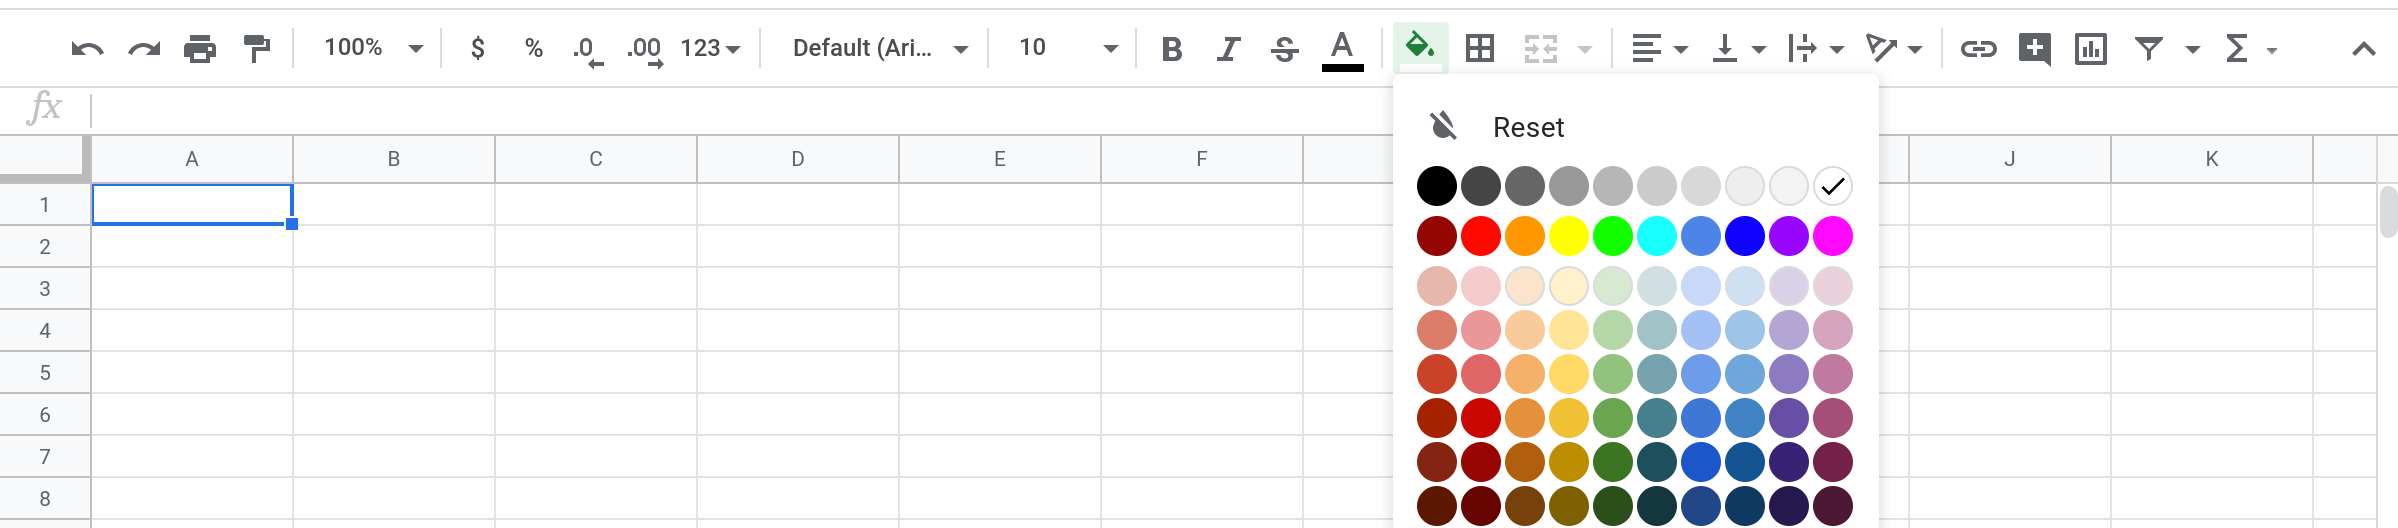 A screenshot of the color picker in Google Sheets.